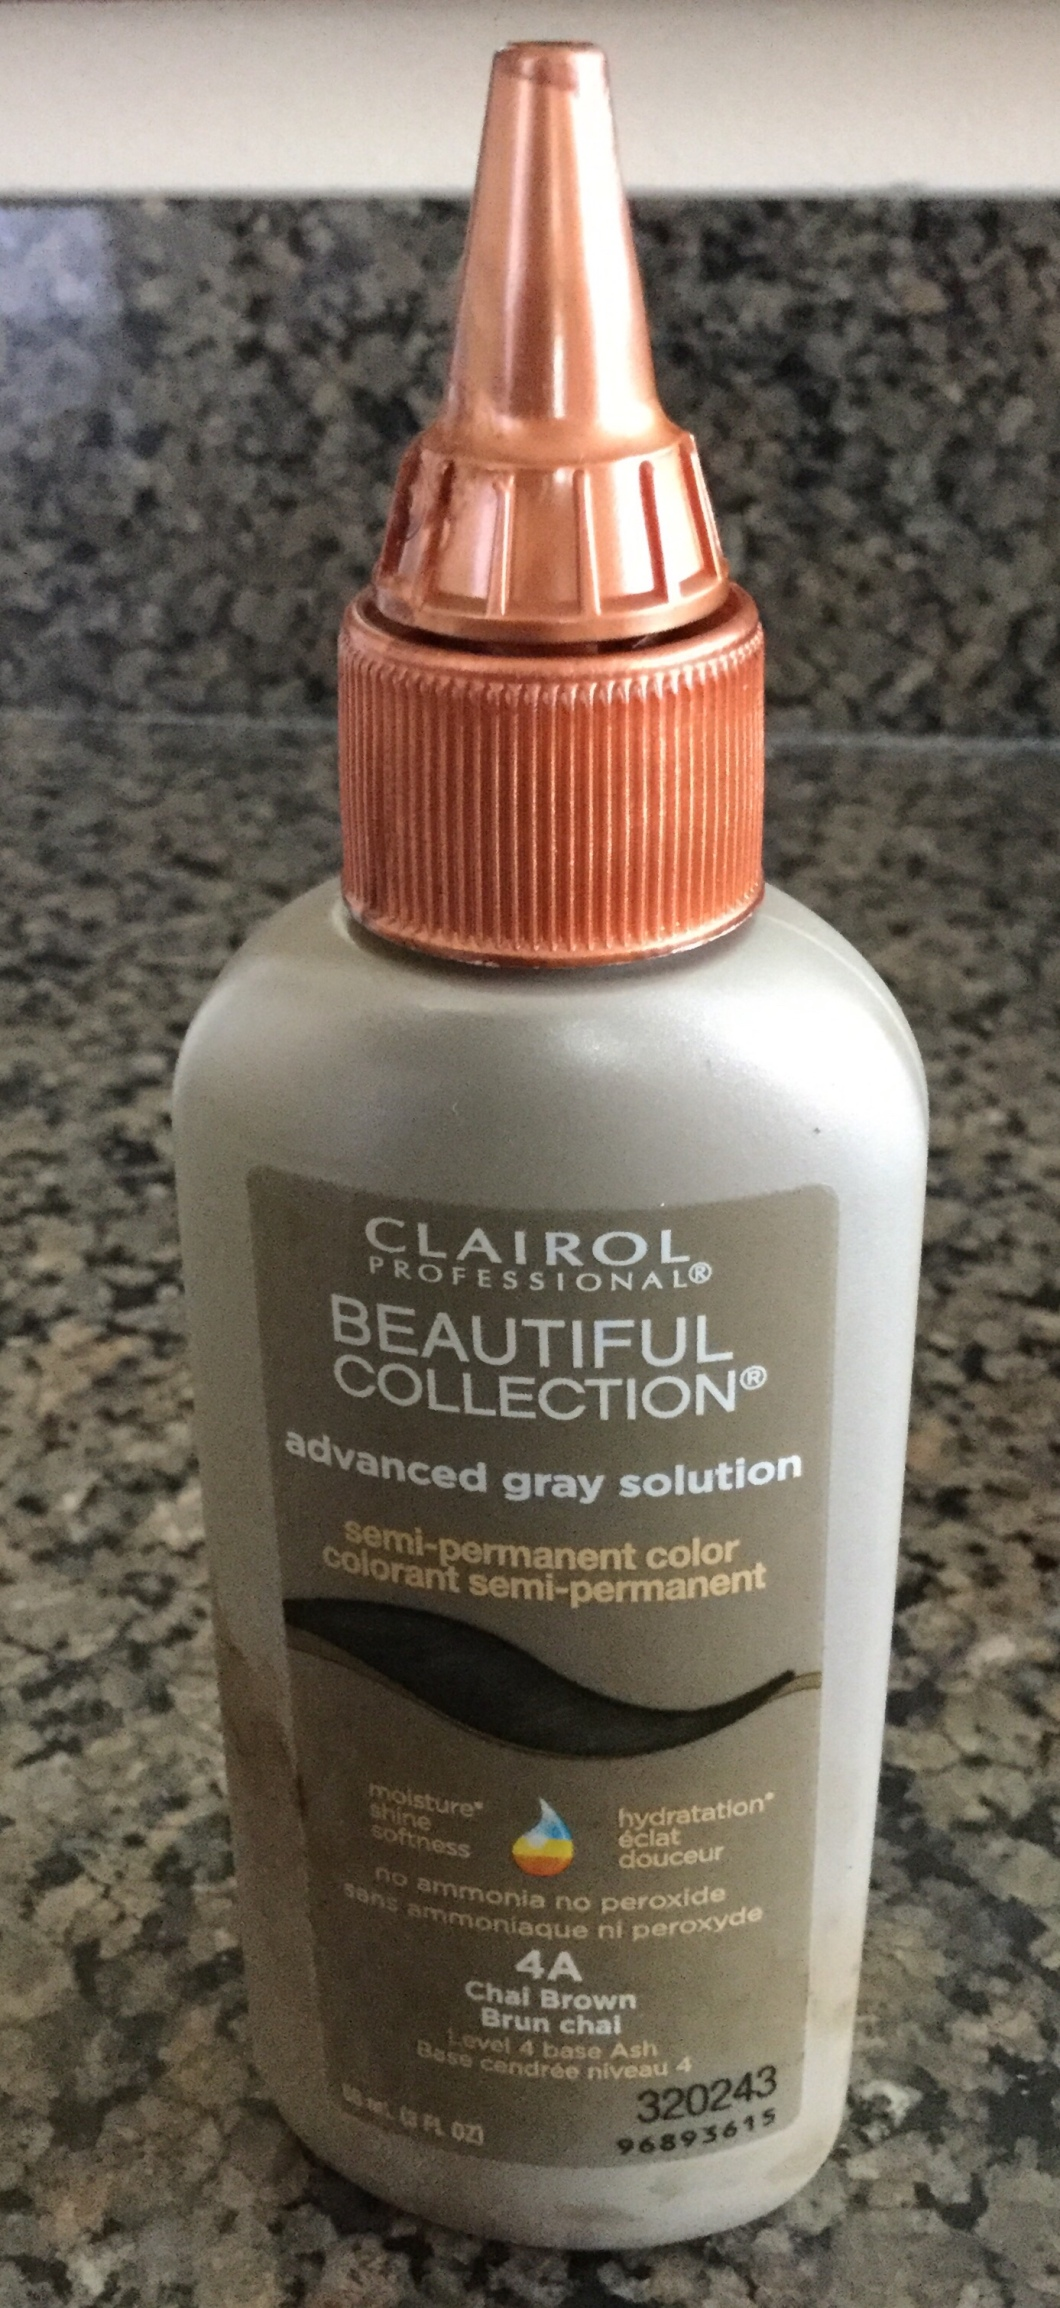 Clairol Beautiful Collection Advanced Gray Solution Review Layover